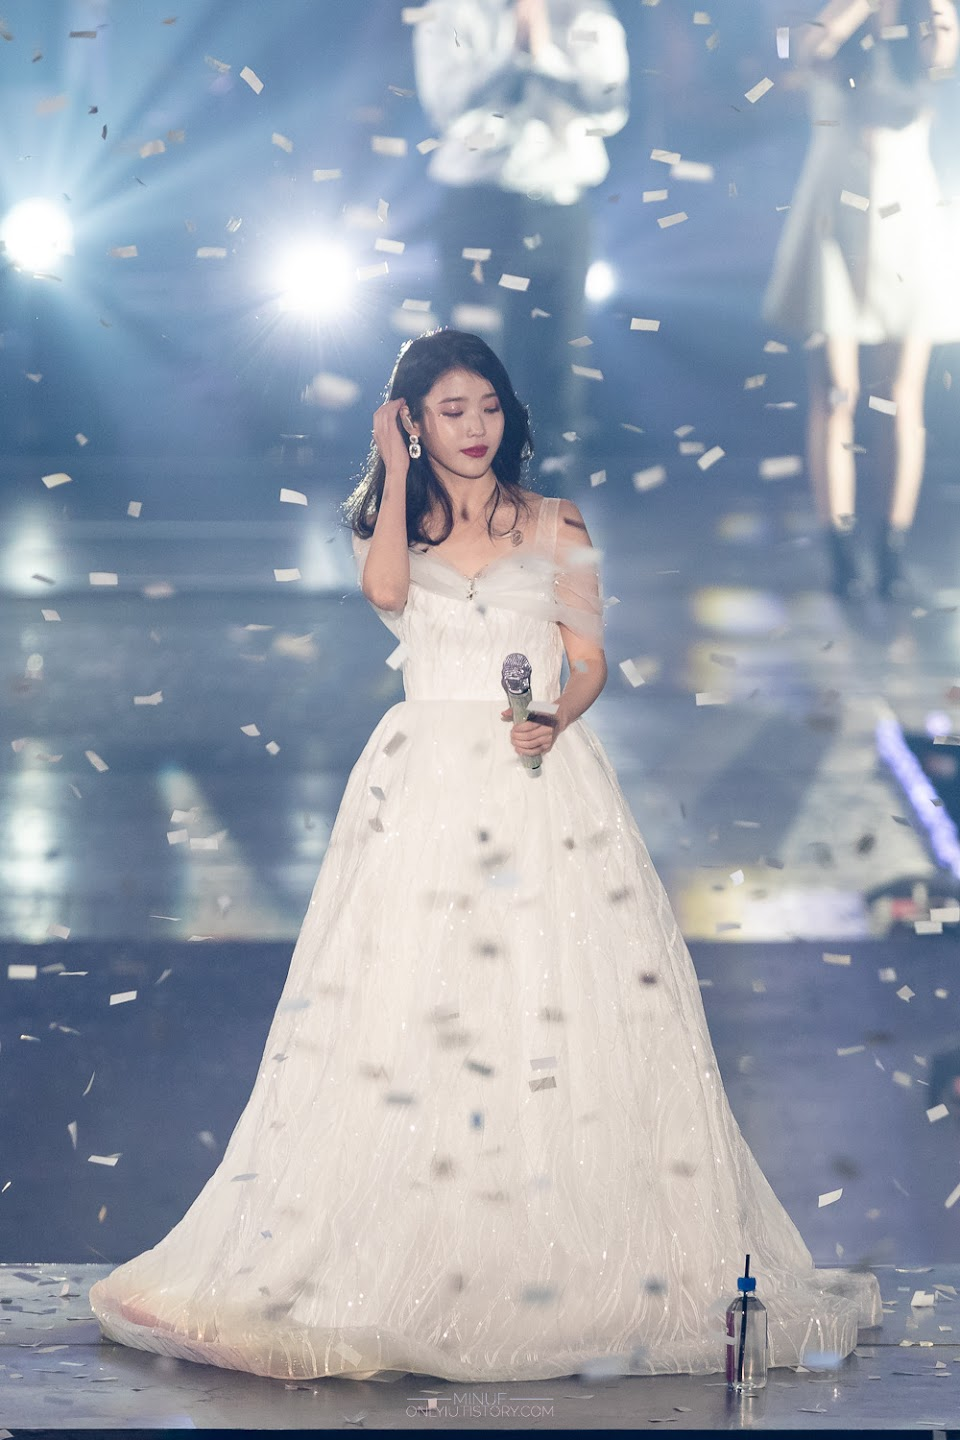 iuwhitegowns_10th anniversary concert 2018 2